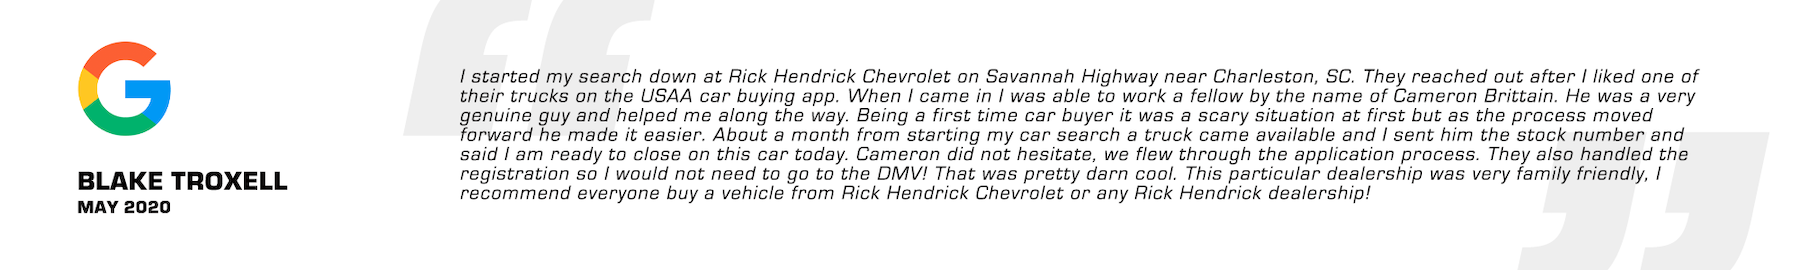 Great Review for Chevy Dealer